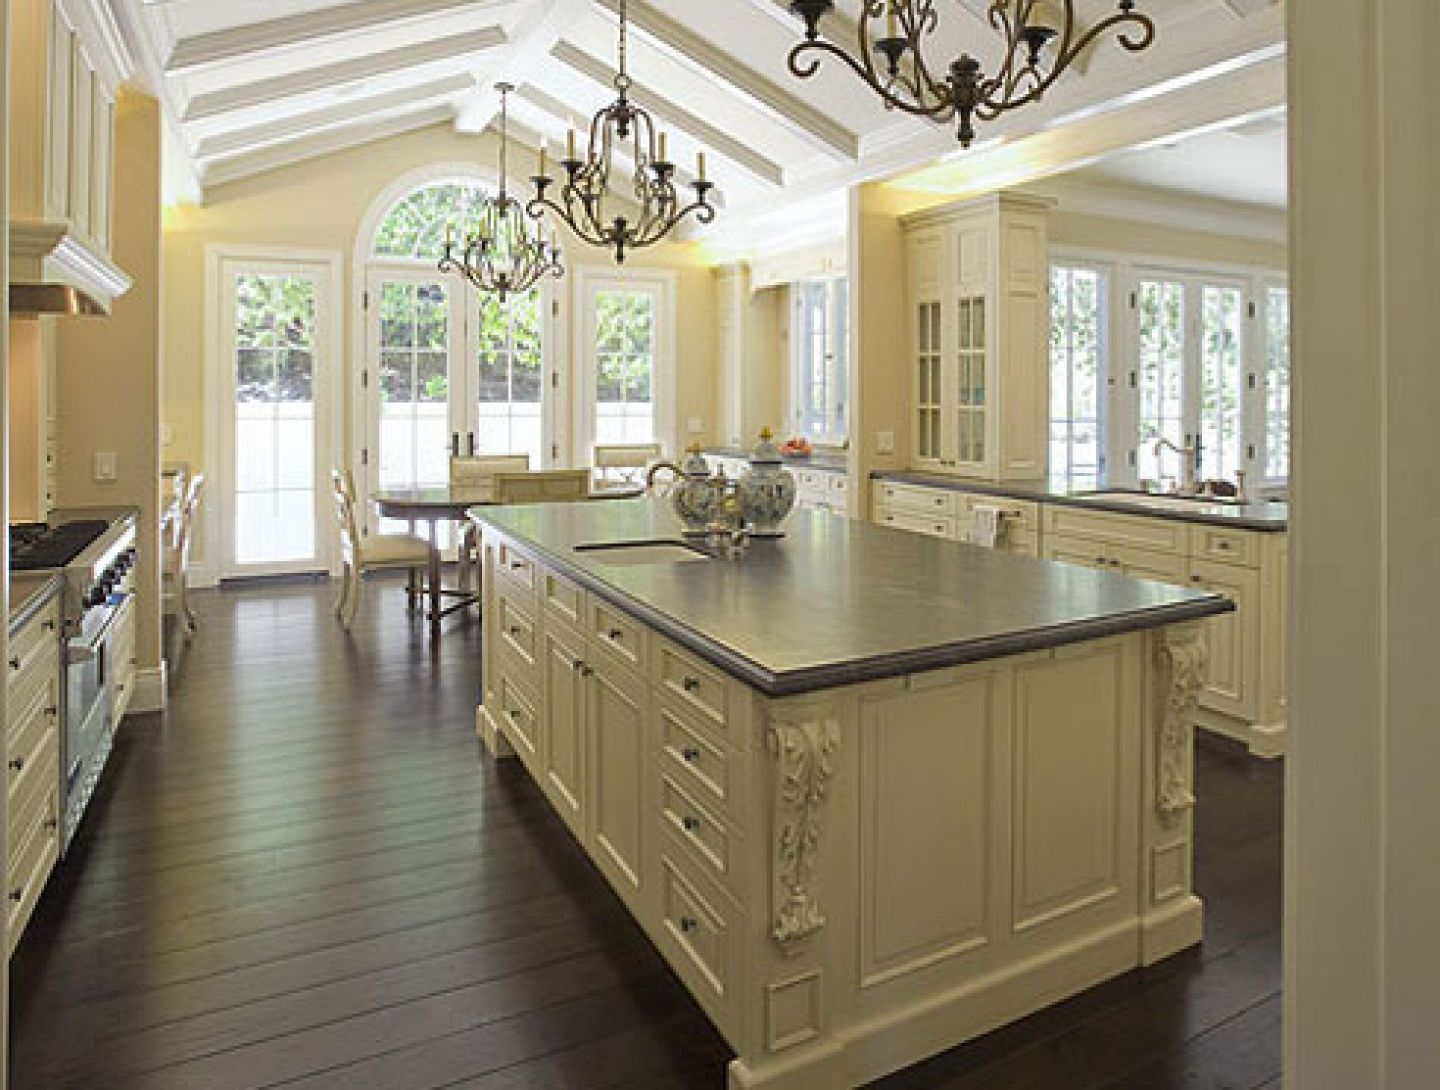 pictures of french country kitchen design french country - Country Kitchen Design